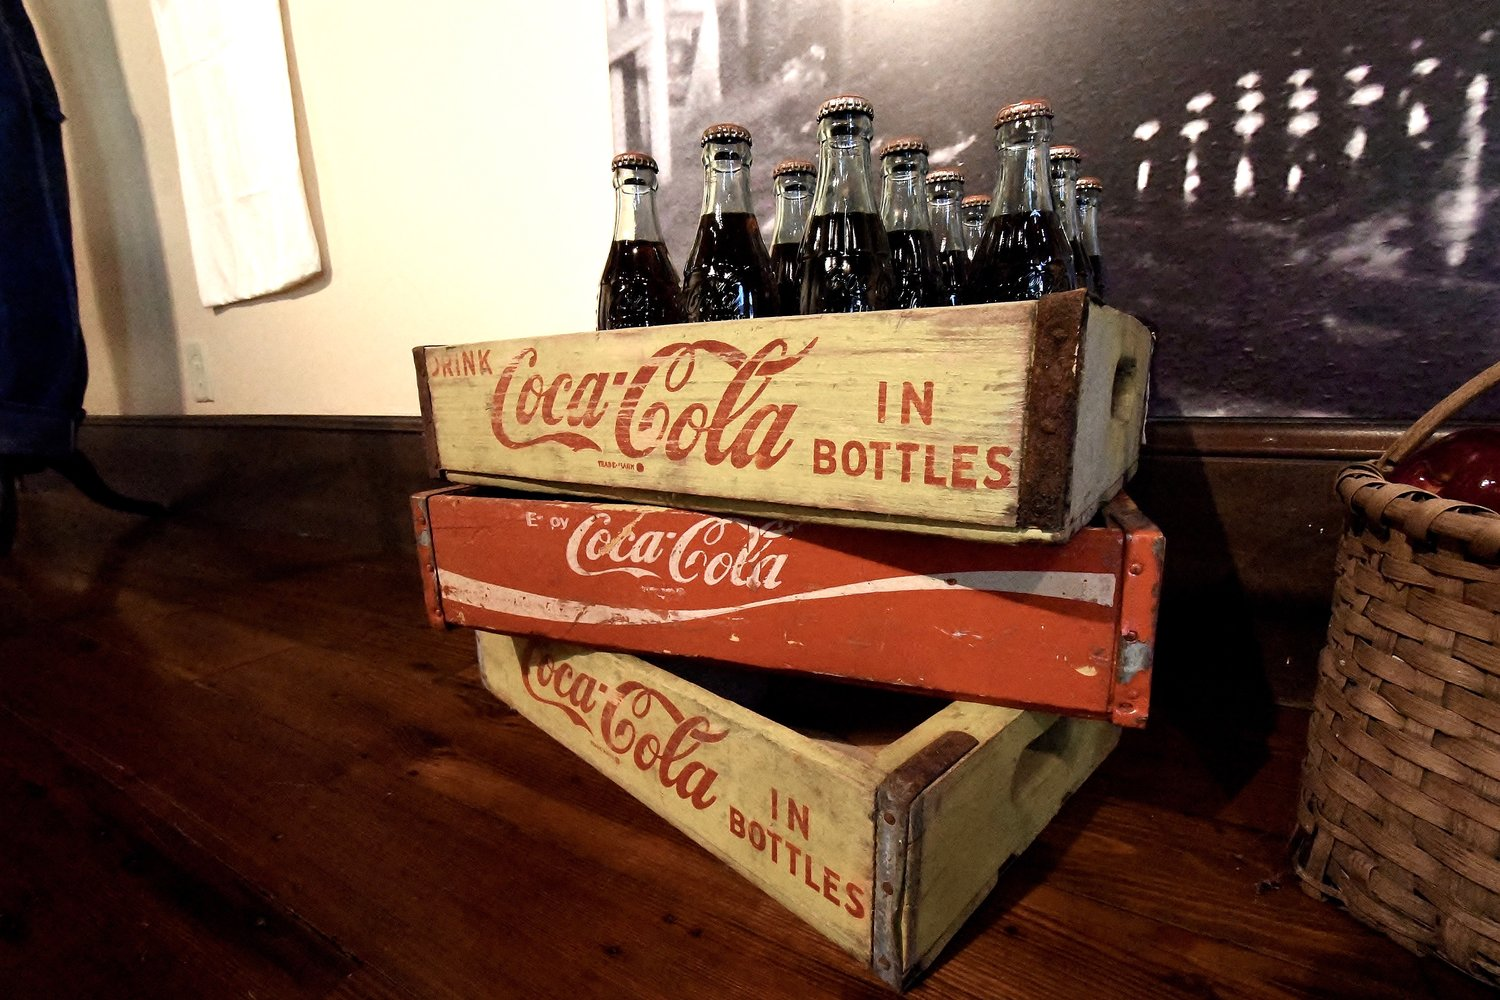 Coca-Cola crates and bottles serve as a reminder that the 1869 Courthouse was once the site of several grocery stores.